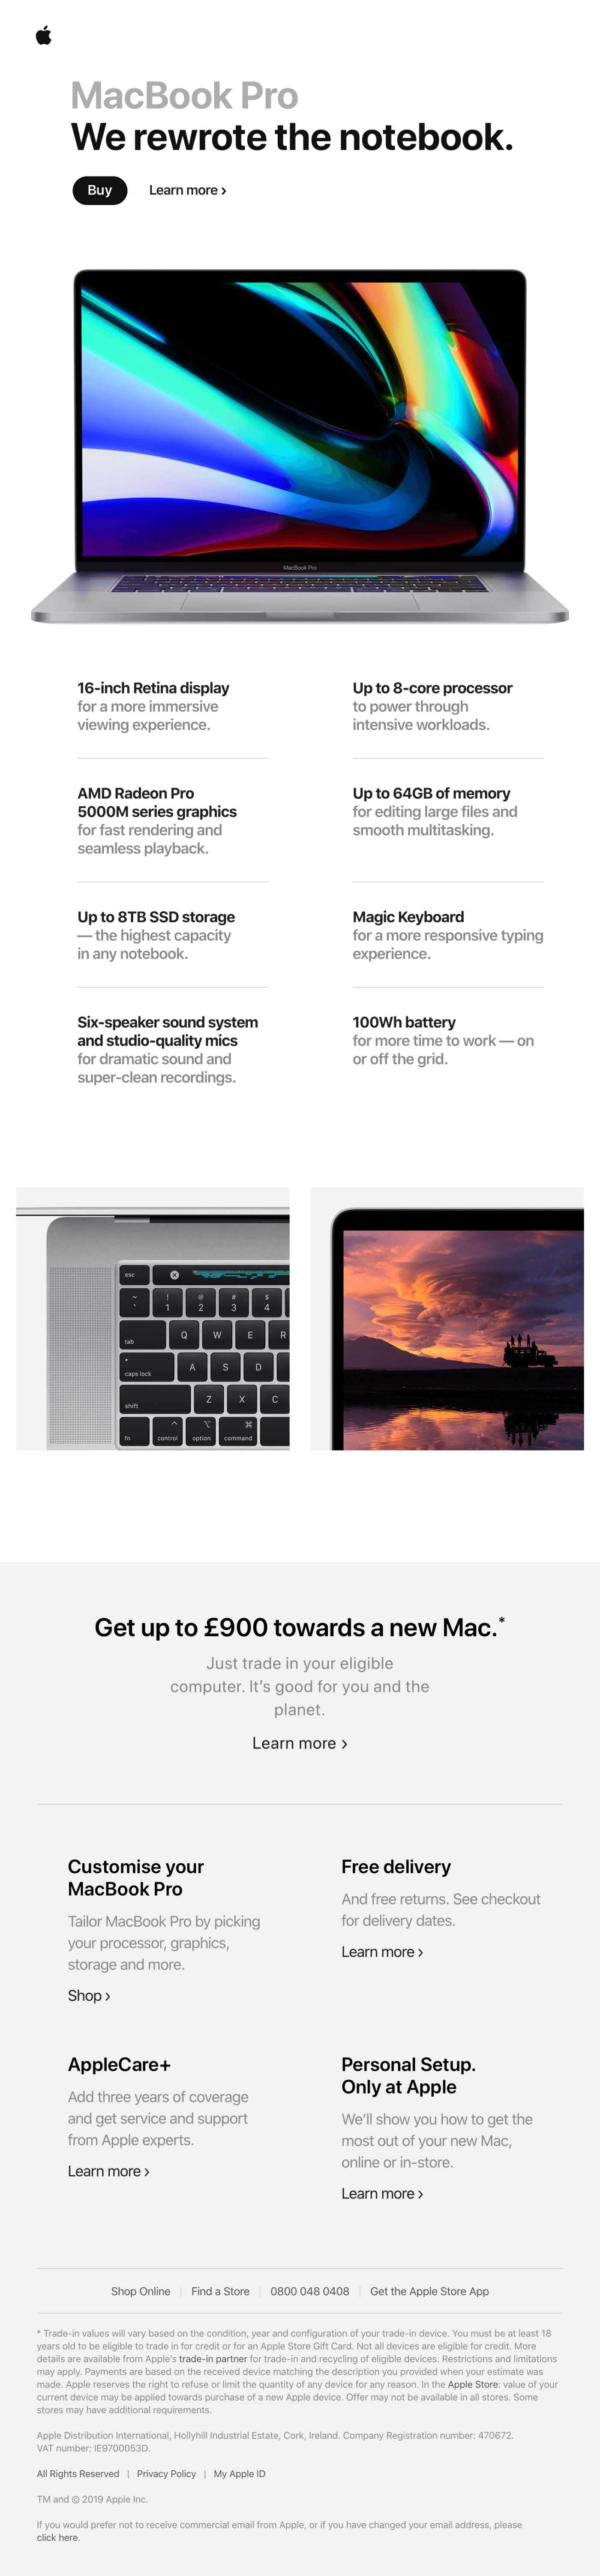 Apple product launch email